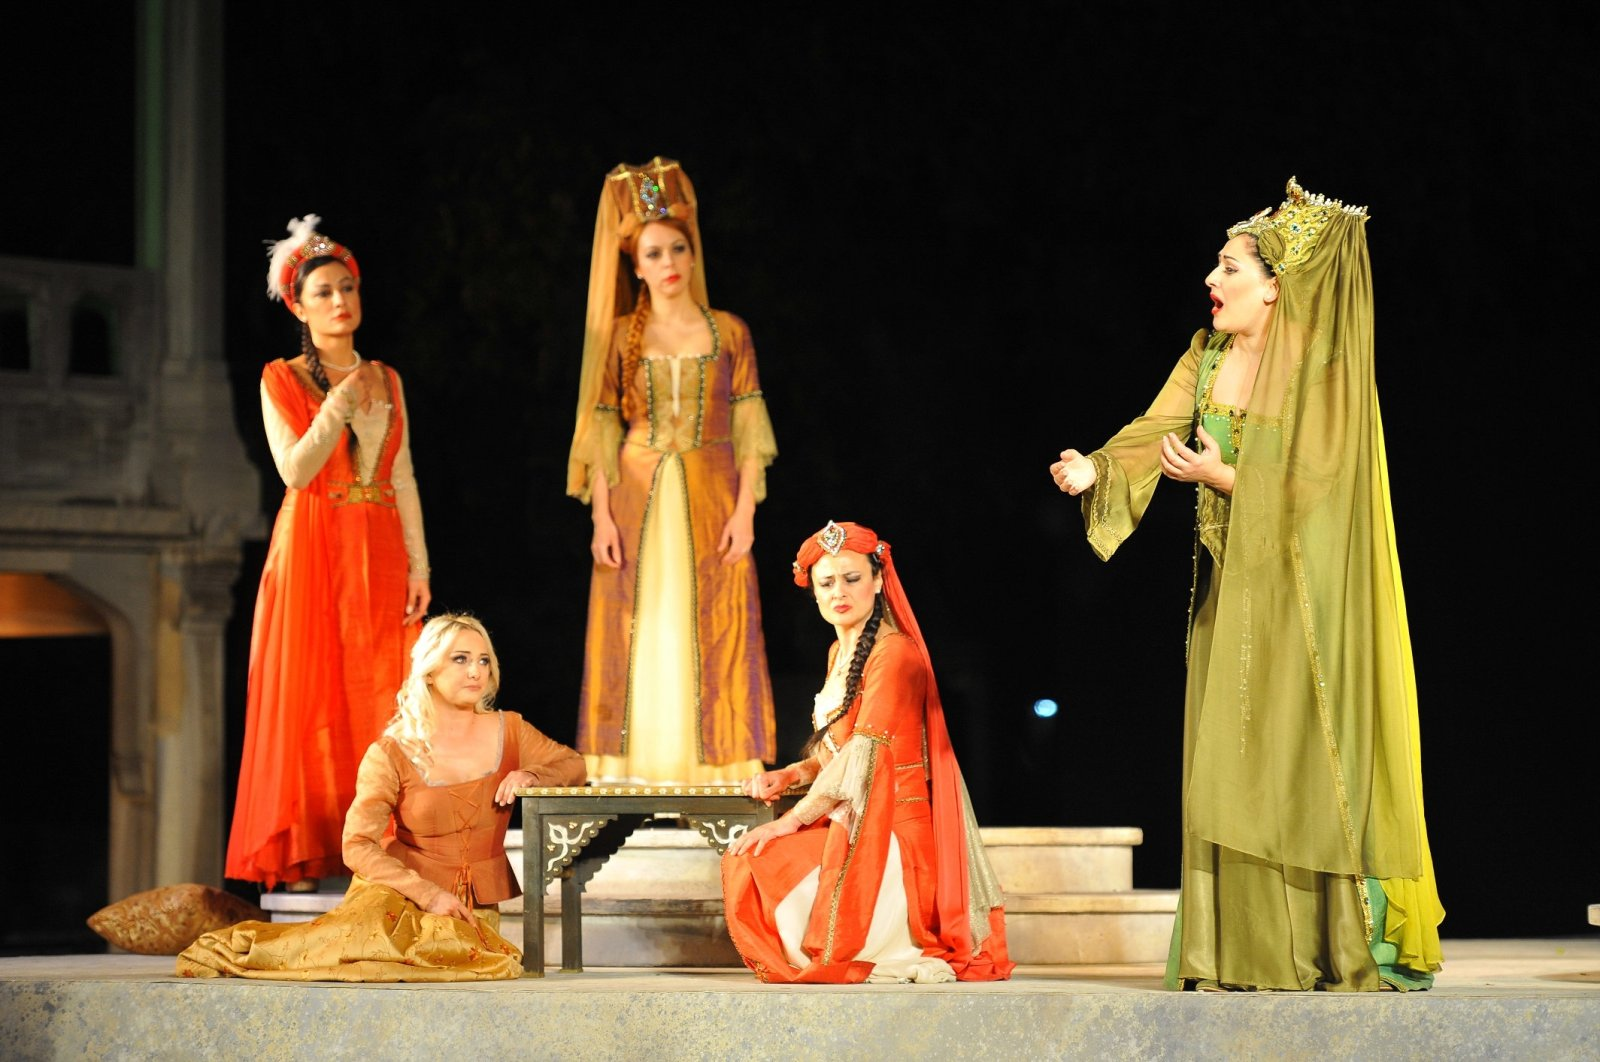 """The IDOB performs the opera """"Abduction from the Seraglio"""" in Istanbul Archaeology Museums, Turkey, June 13, 2017. (Archive Photo)"""